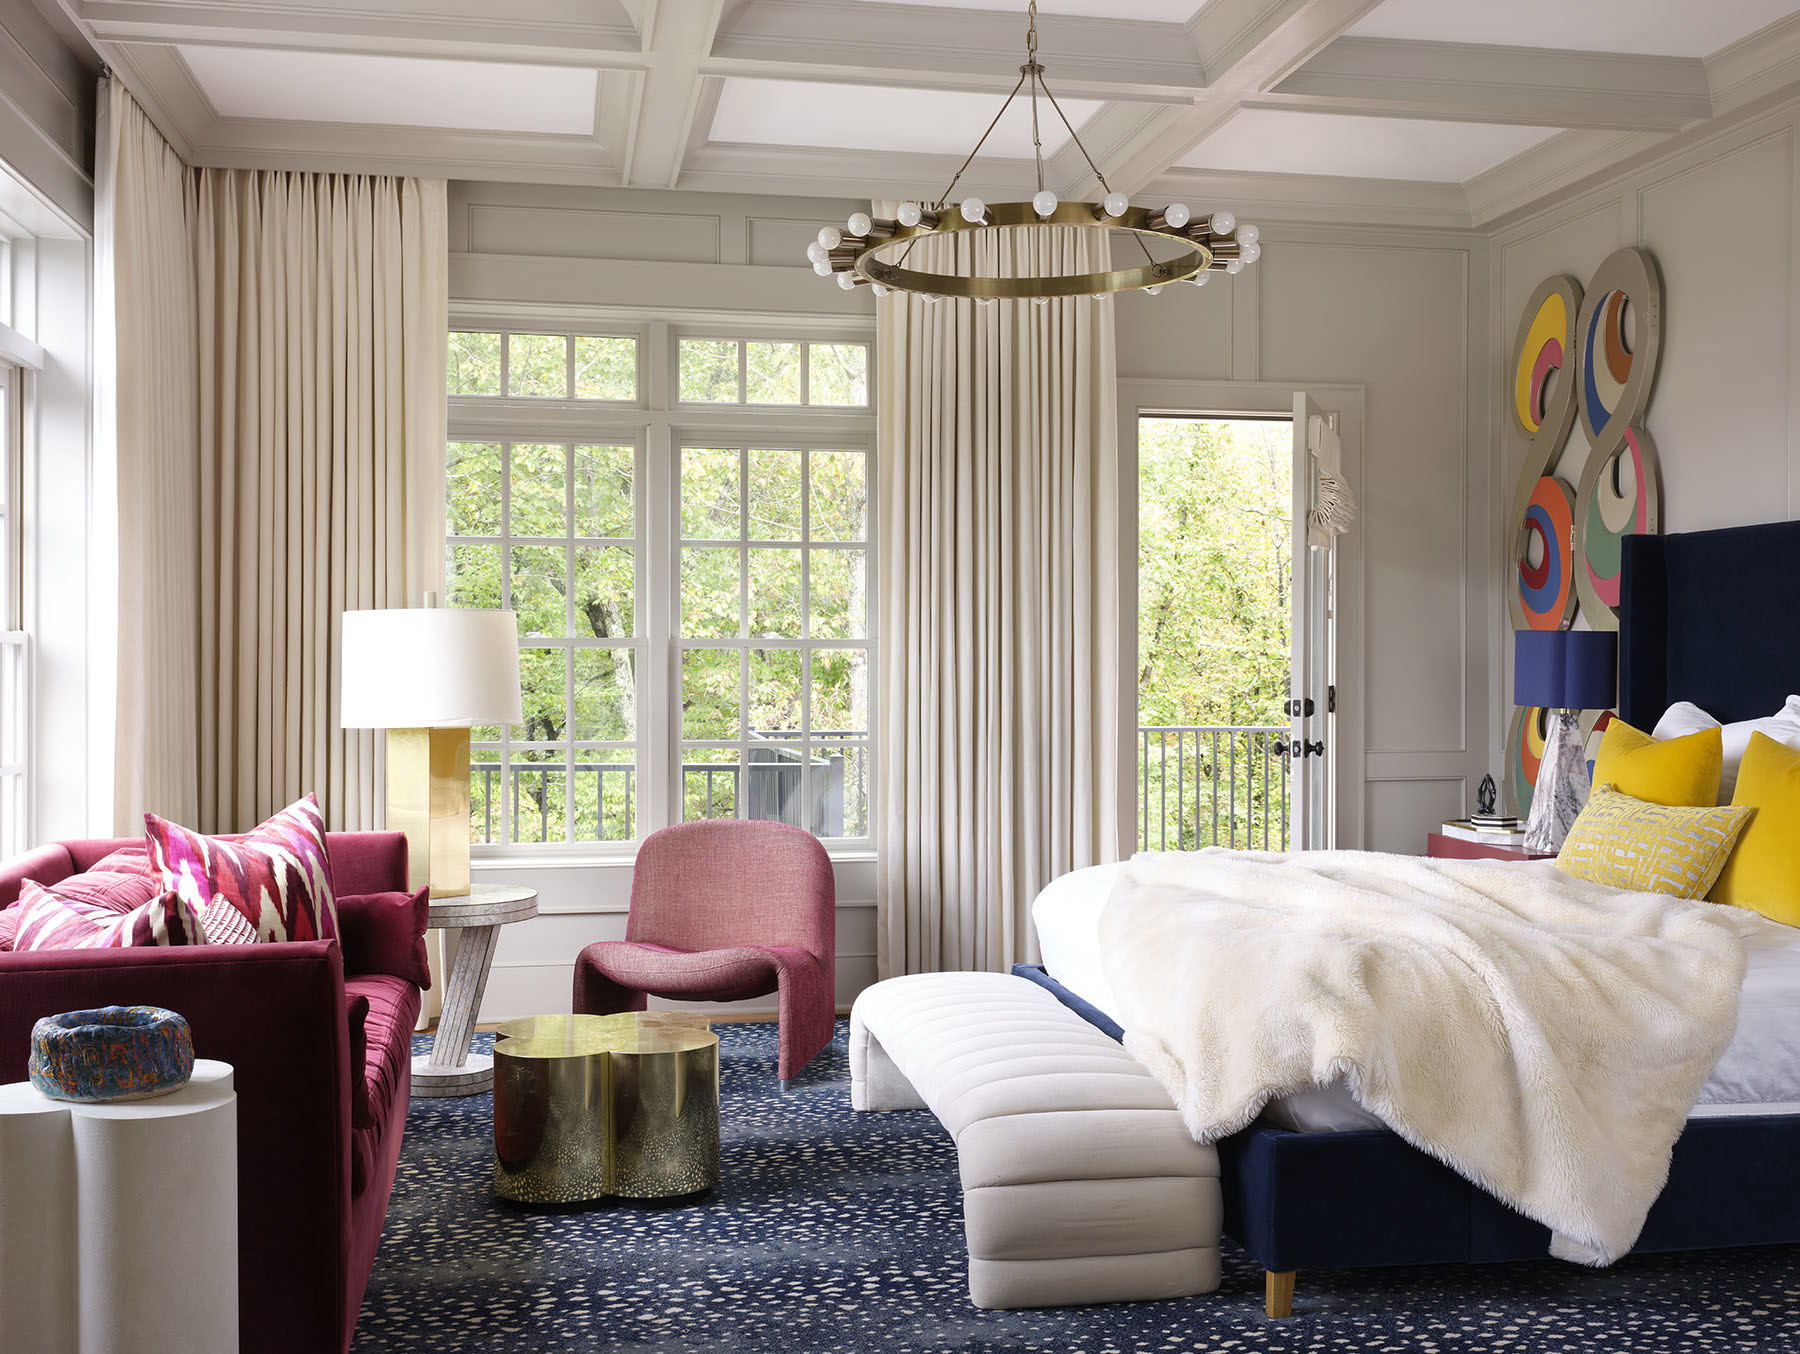 Varying shapes, texture, and color come together in the master bedroom to really showcase Blehm's signature playful aesthetic. Restoration Hardware Bed | Restoration Hardware Bedding | Flor Area Rug | Vintage Bench Seat | Restoration Hardware Sofa | Gillian Bryce Nesting Table | Clayton Gray Home Chandelier | Vintage Armchair | Custom Drapes